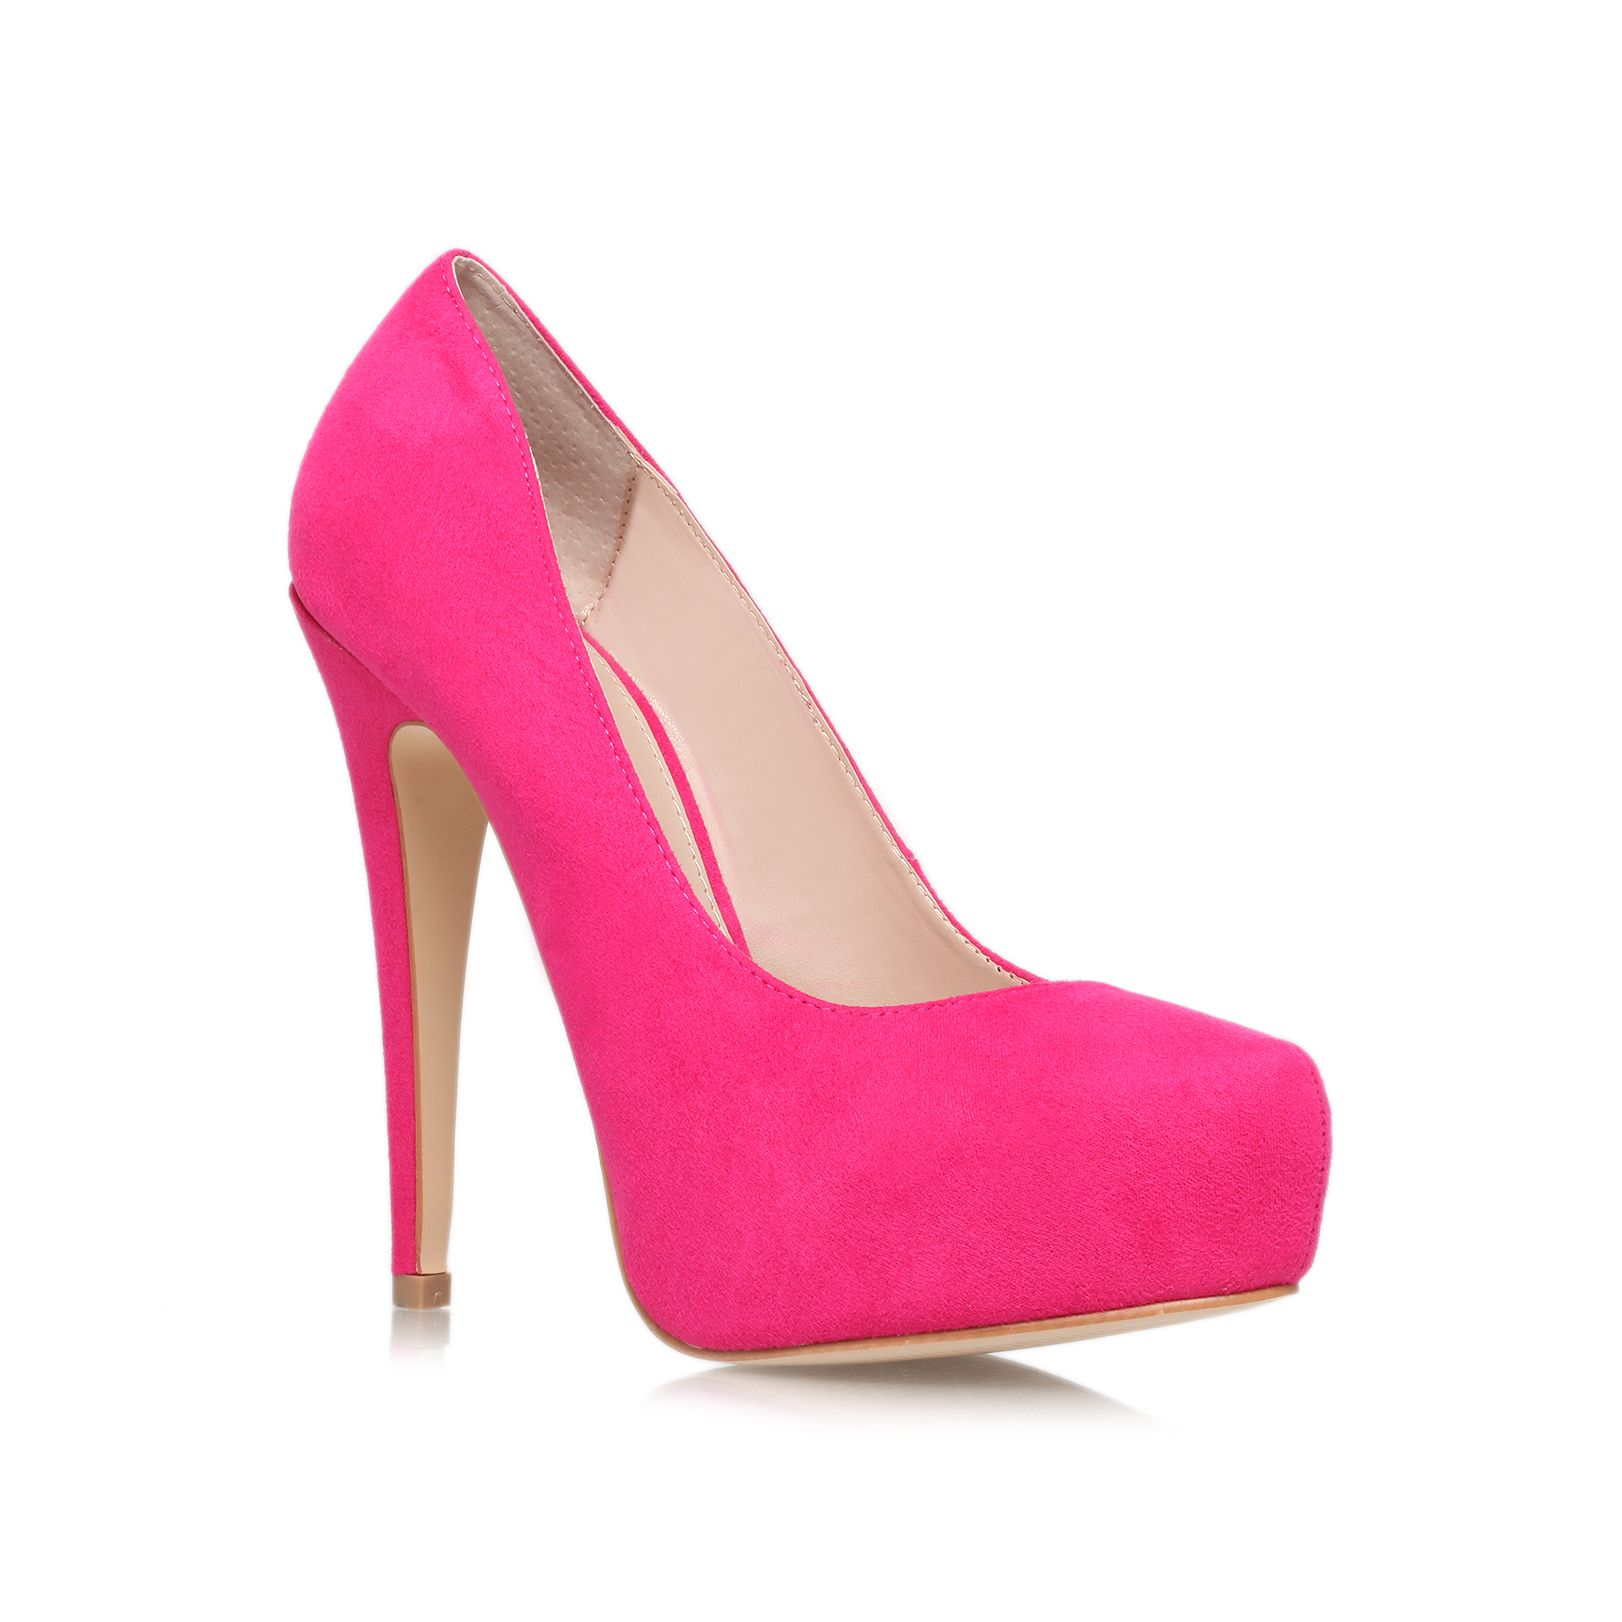 Kaci high heel court shoes